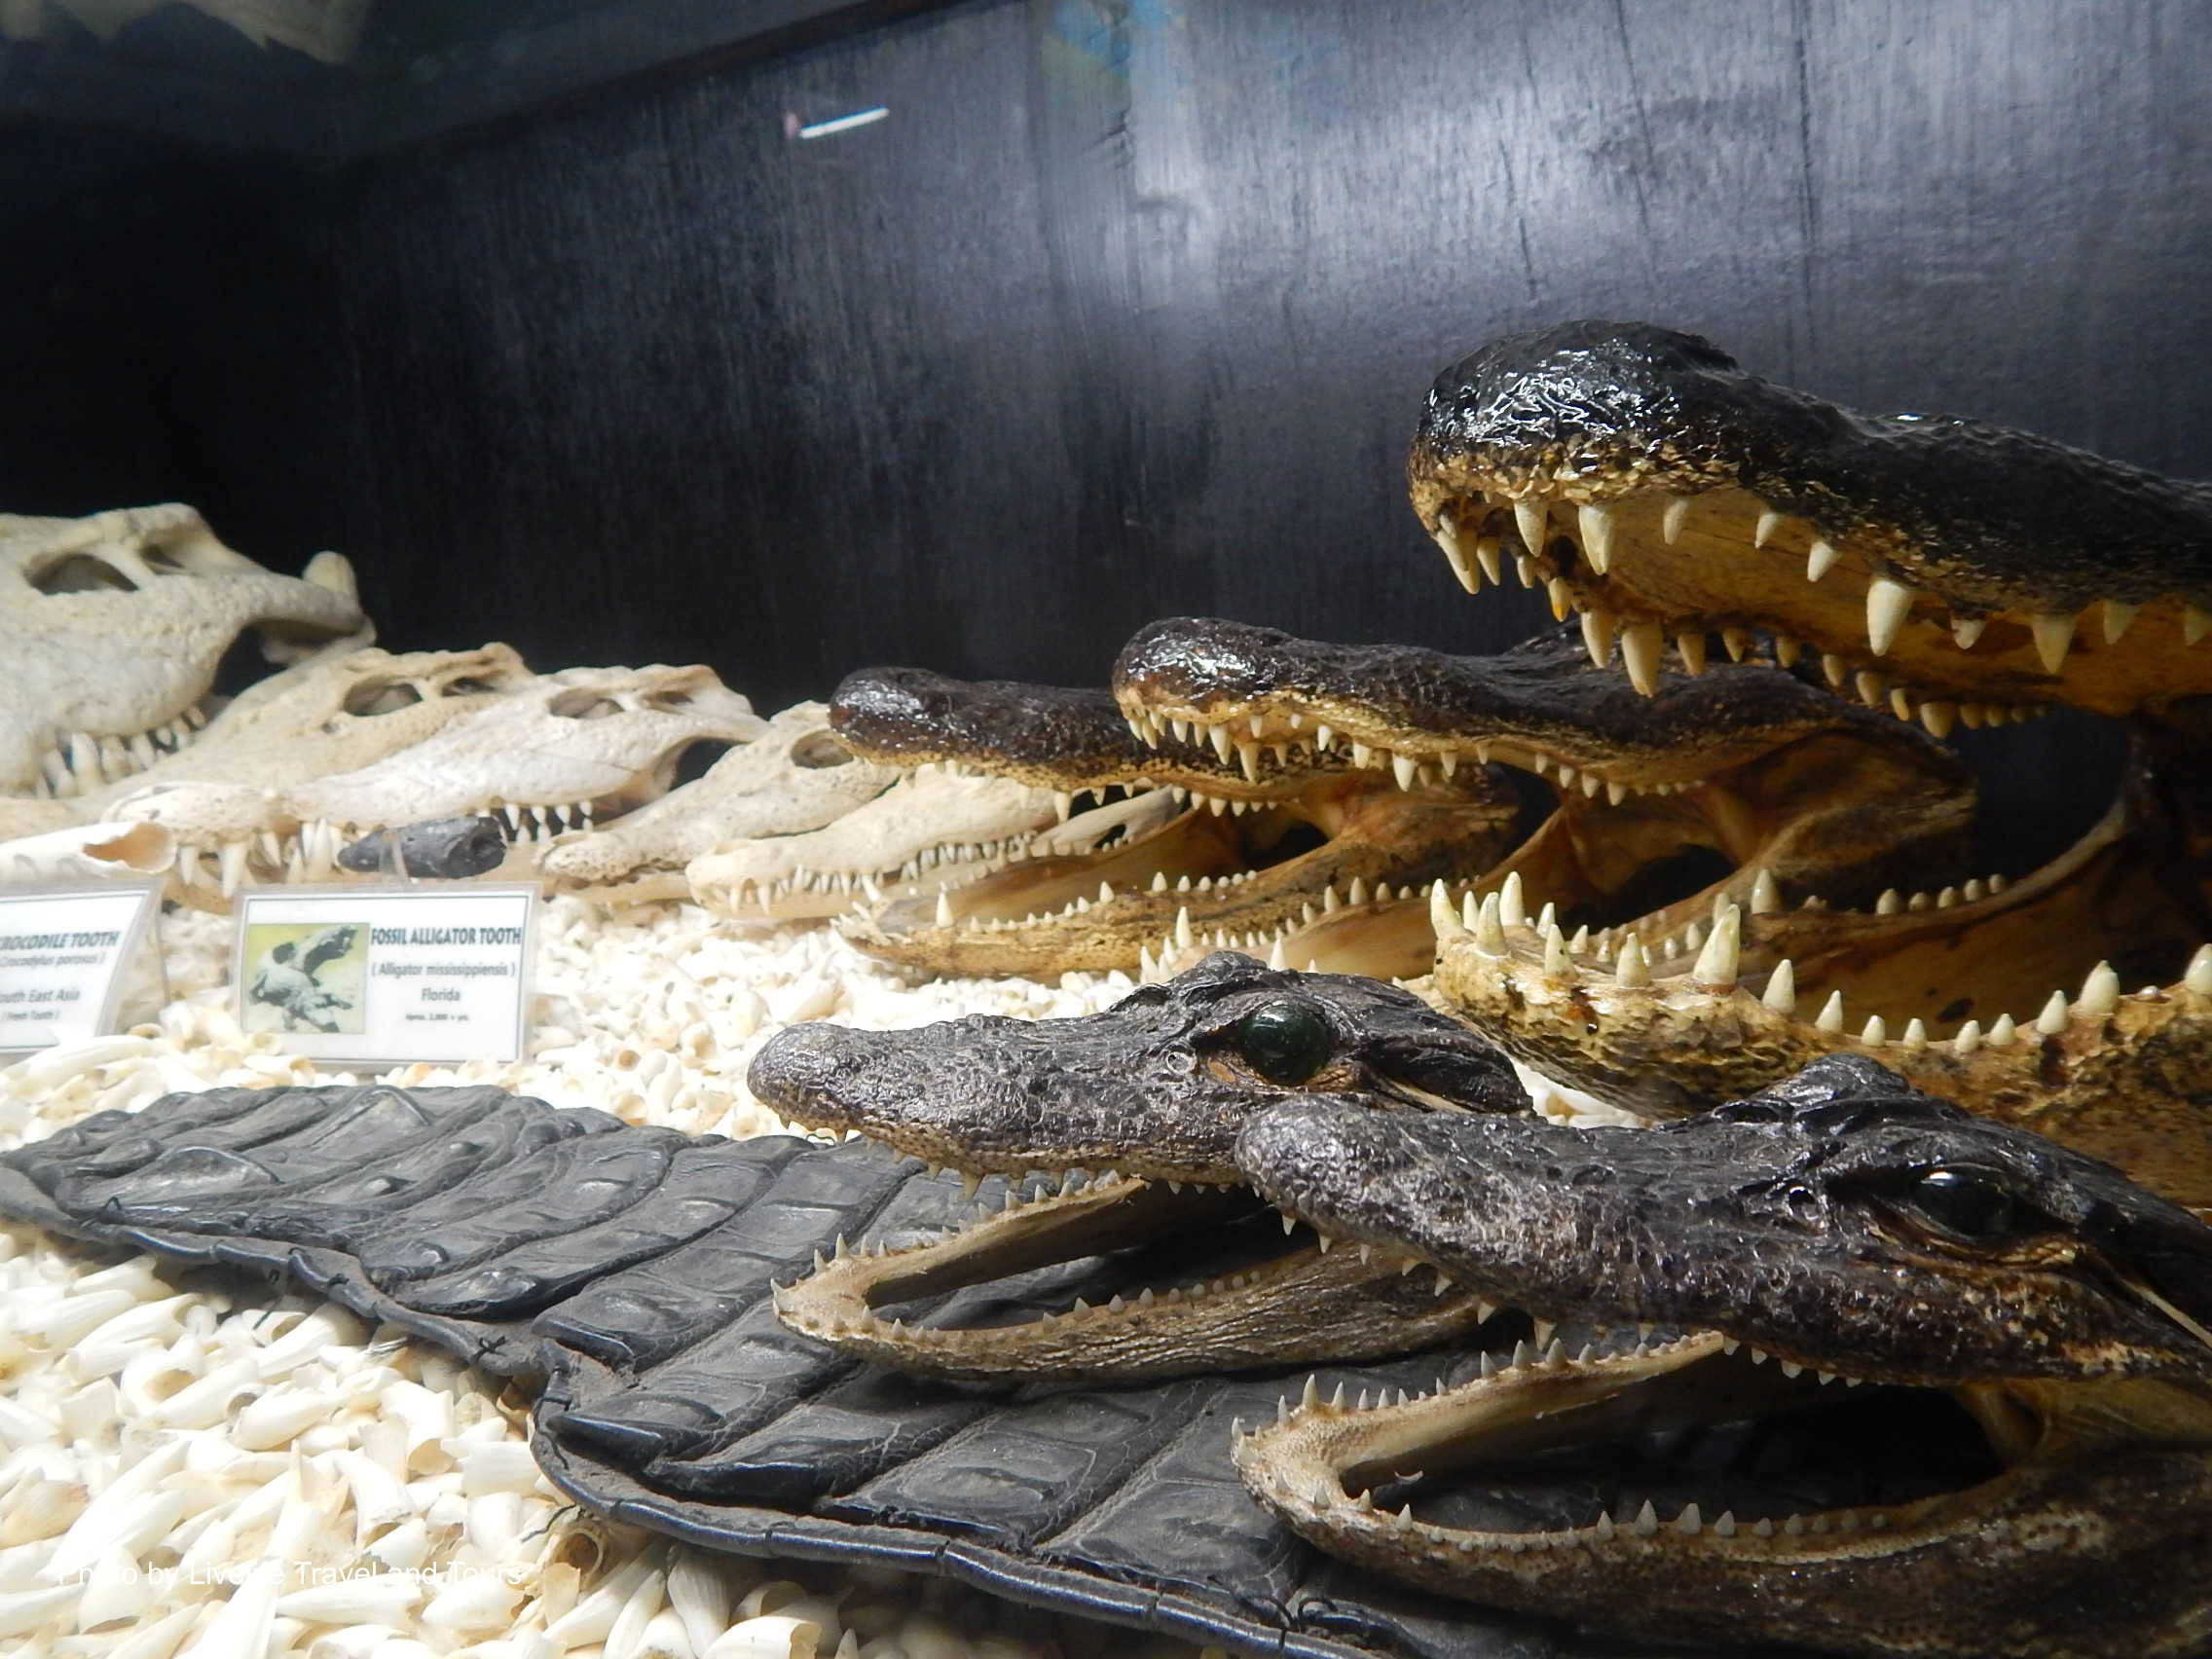 Crocodile display at the Crocodile Park & D'Bone Collector Museum in Davao